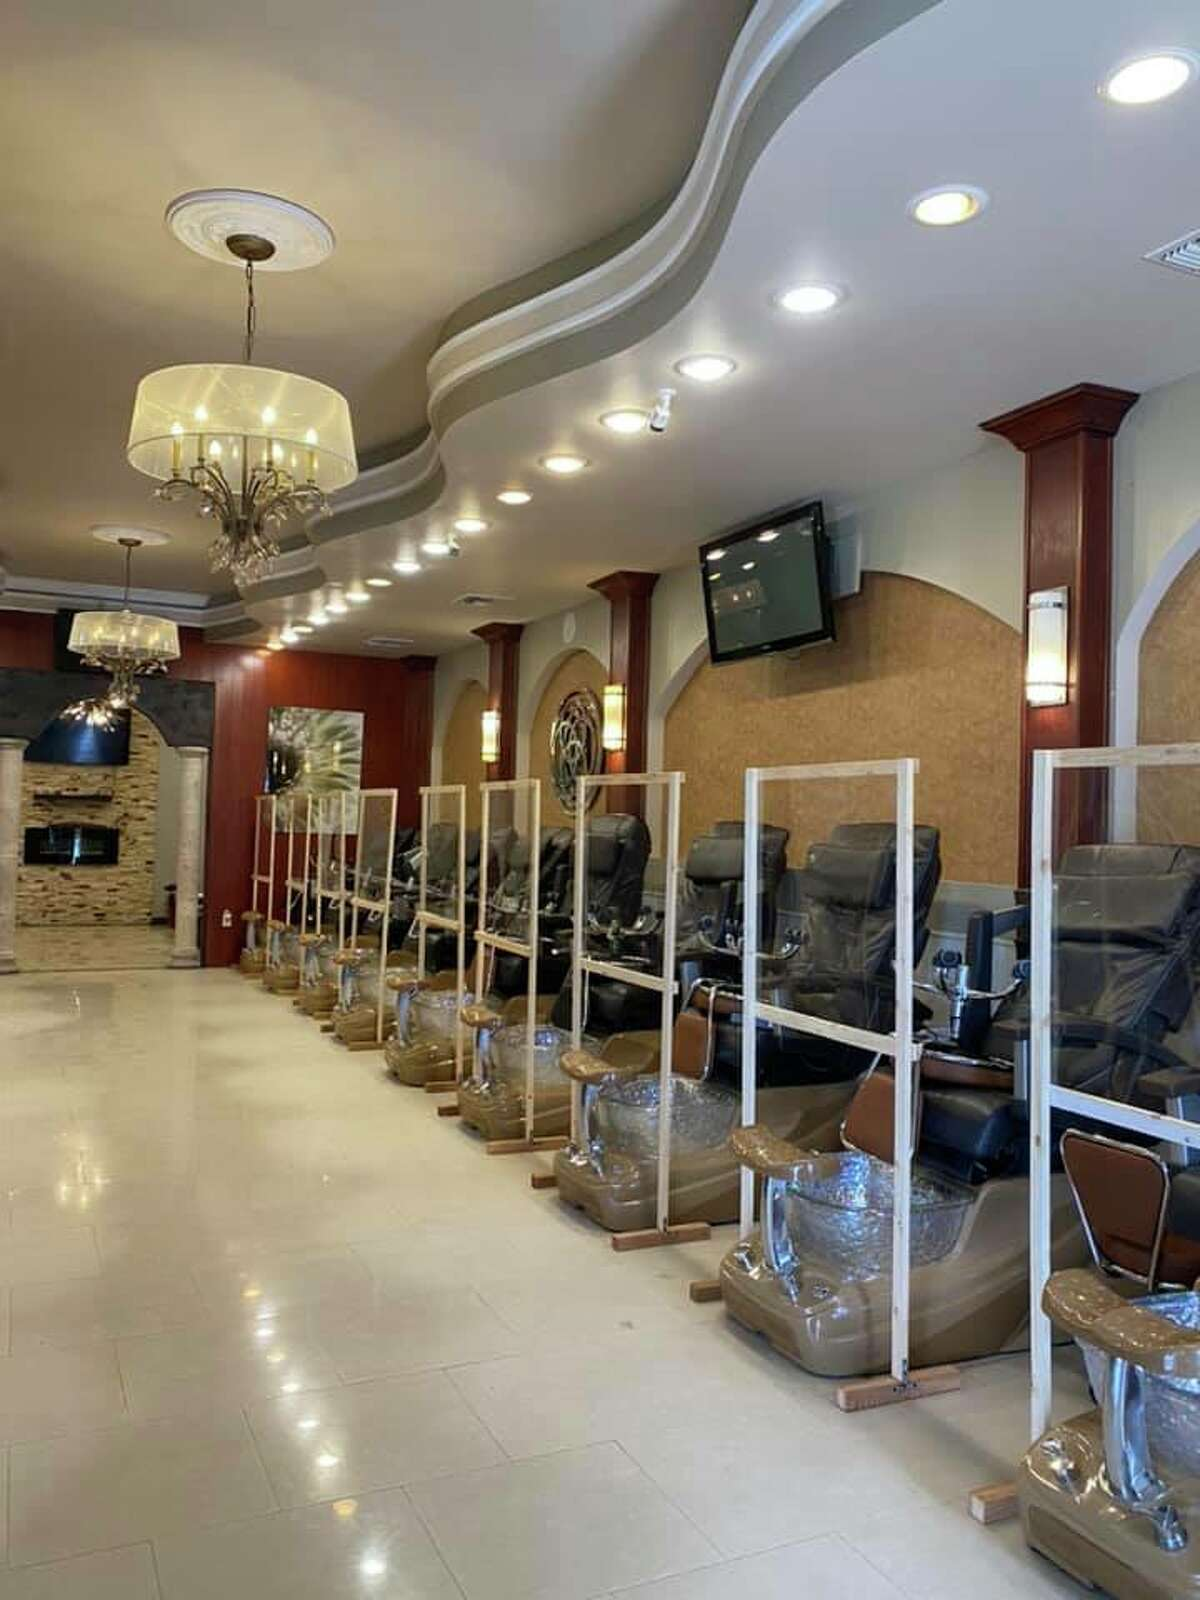 Like other salons, Vinpearl Nails and Lashes, located at 20079 Stone Oak Parkway, hasn't received approval to open its doors. The husband-wife ownership duo of Tuyet Nguyen and Tuan Do are hoping for mid-May as a possible return. In the meantime, the couple installed guards around each work station in the salon, including enclosures around pedicure chairs. The sneak-peek photos were also shared on social media.